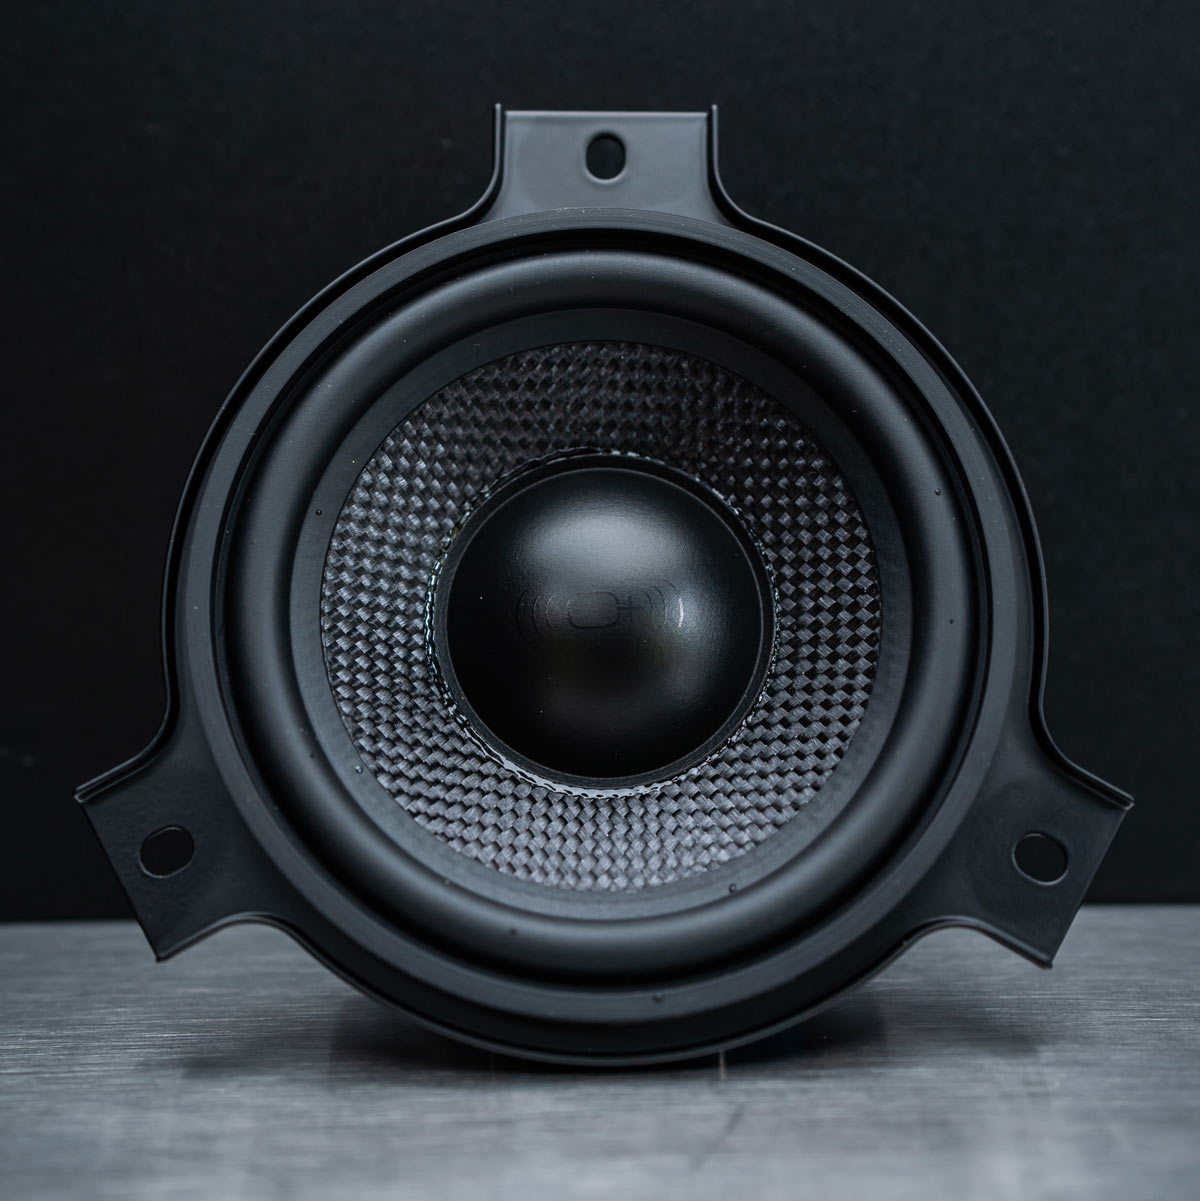 """Tacoma Front 6""""x9"""" Woofer installs plug and play using factory connectors and mounting - No modification, no guesswork. Tacoma speakers, tacoma dash speaker, tacoma front woofer, tacoma double cab front speakers"""